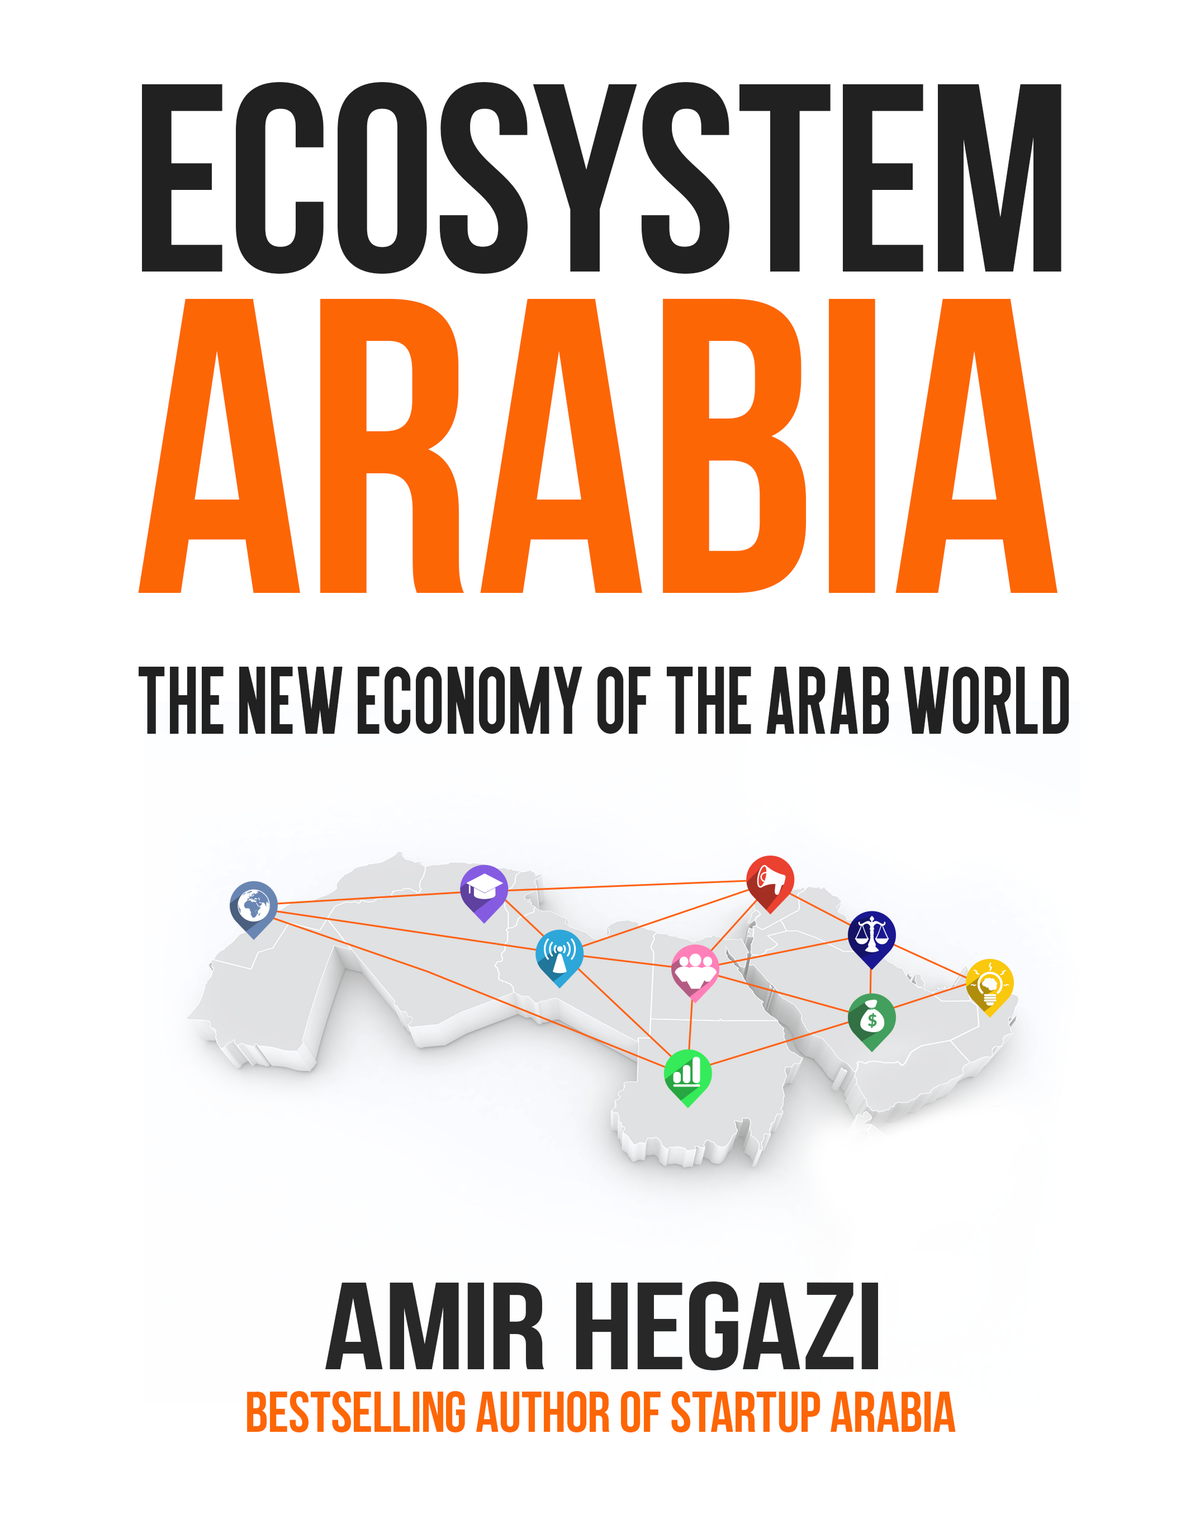 Change from AUTHOR OF STARTUP ARABIA to BESTSELLING AUTHOR OF STARTUP ARABIA